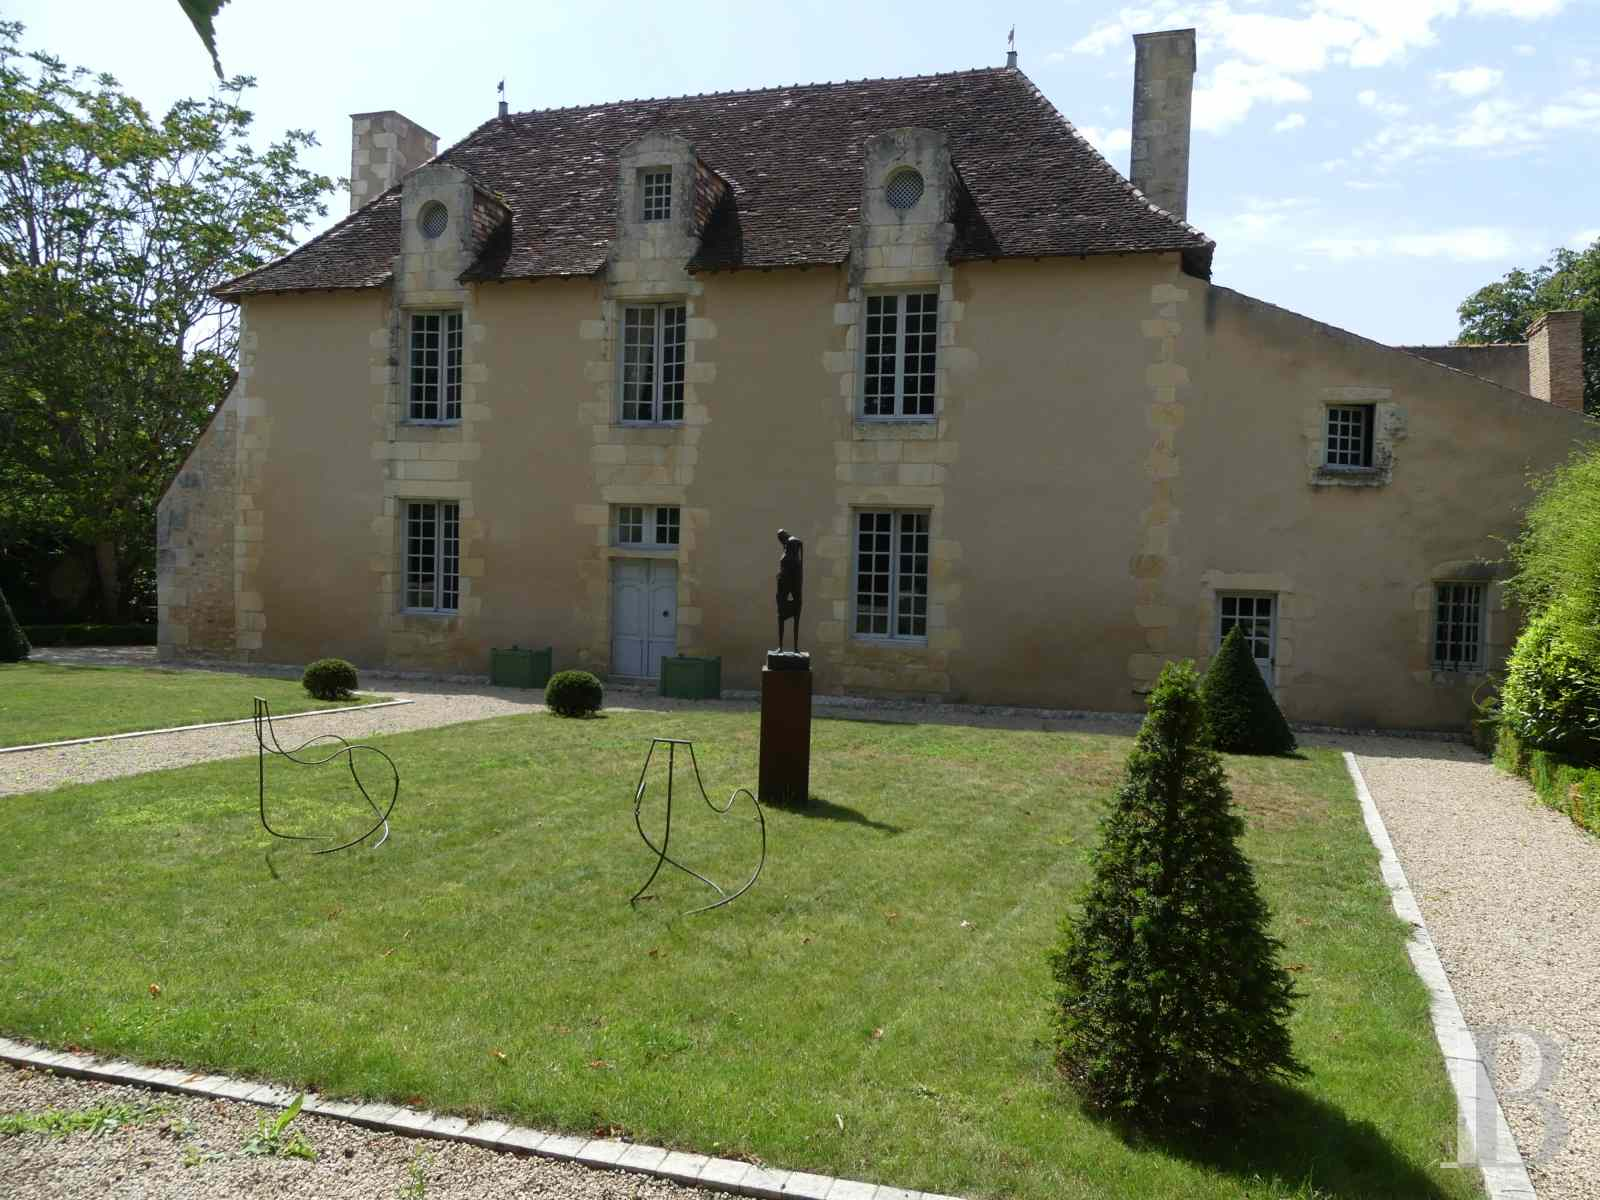 France mansions for sale poitou charentes poitiers estate - 2 zoom